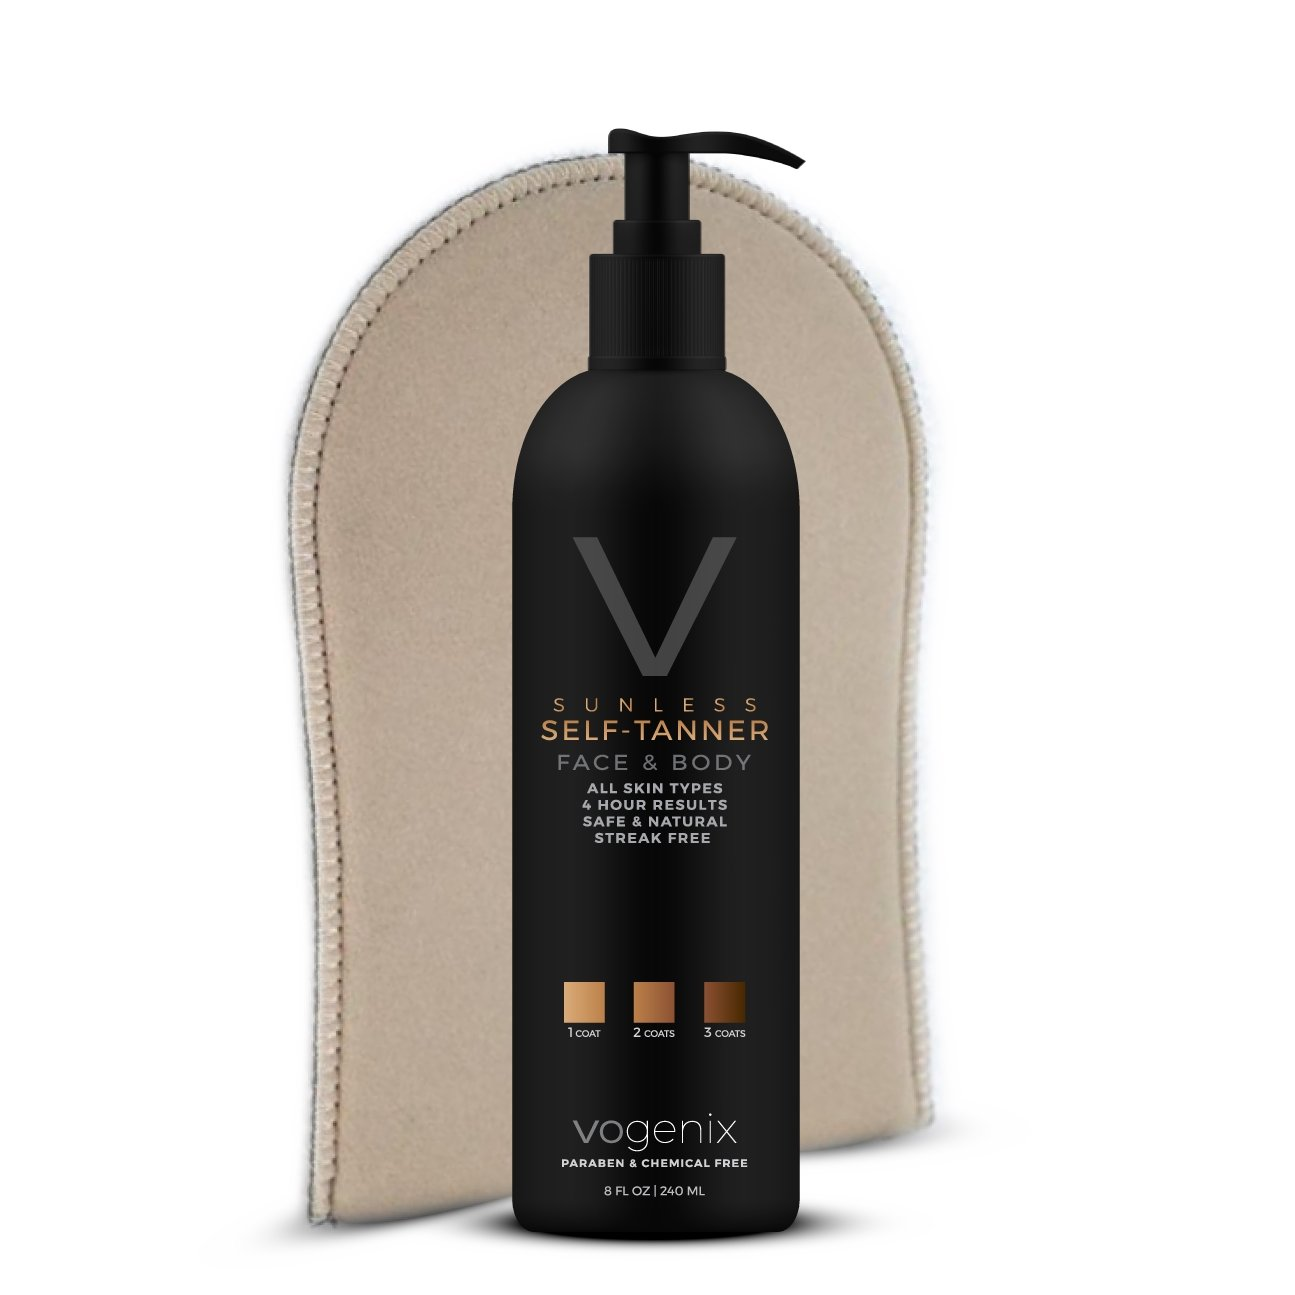 The Best Self-Tanner by Vogenix - All Natural & Organic - Free Application Mitt by Vogenix